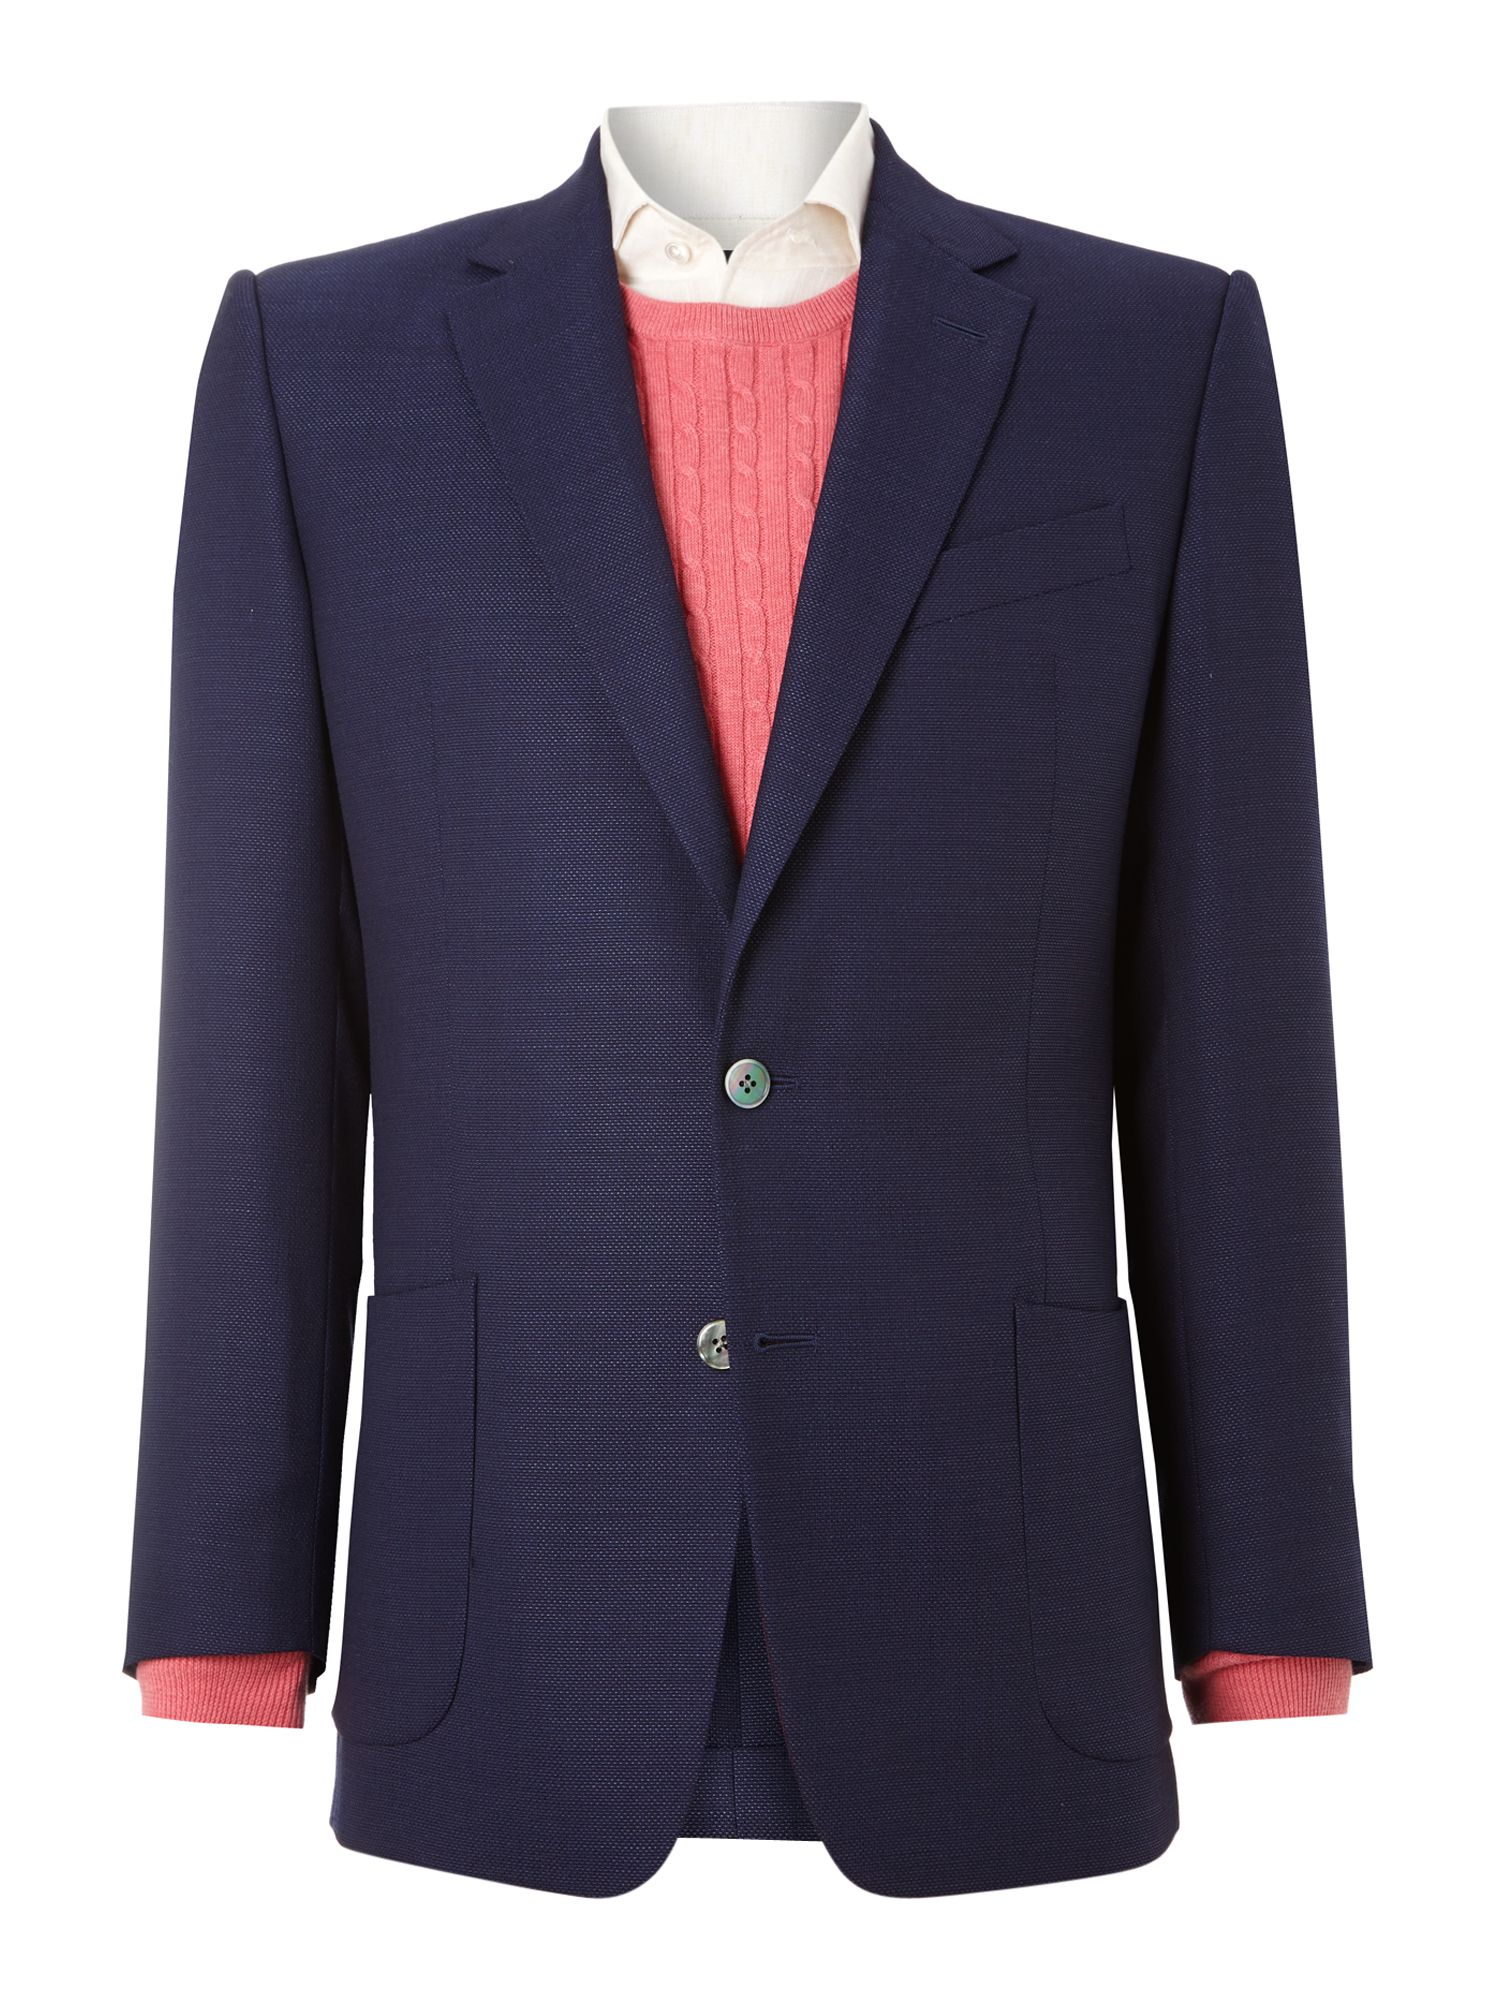 Chester barrie mesh wool contemporary jacket